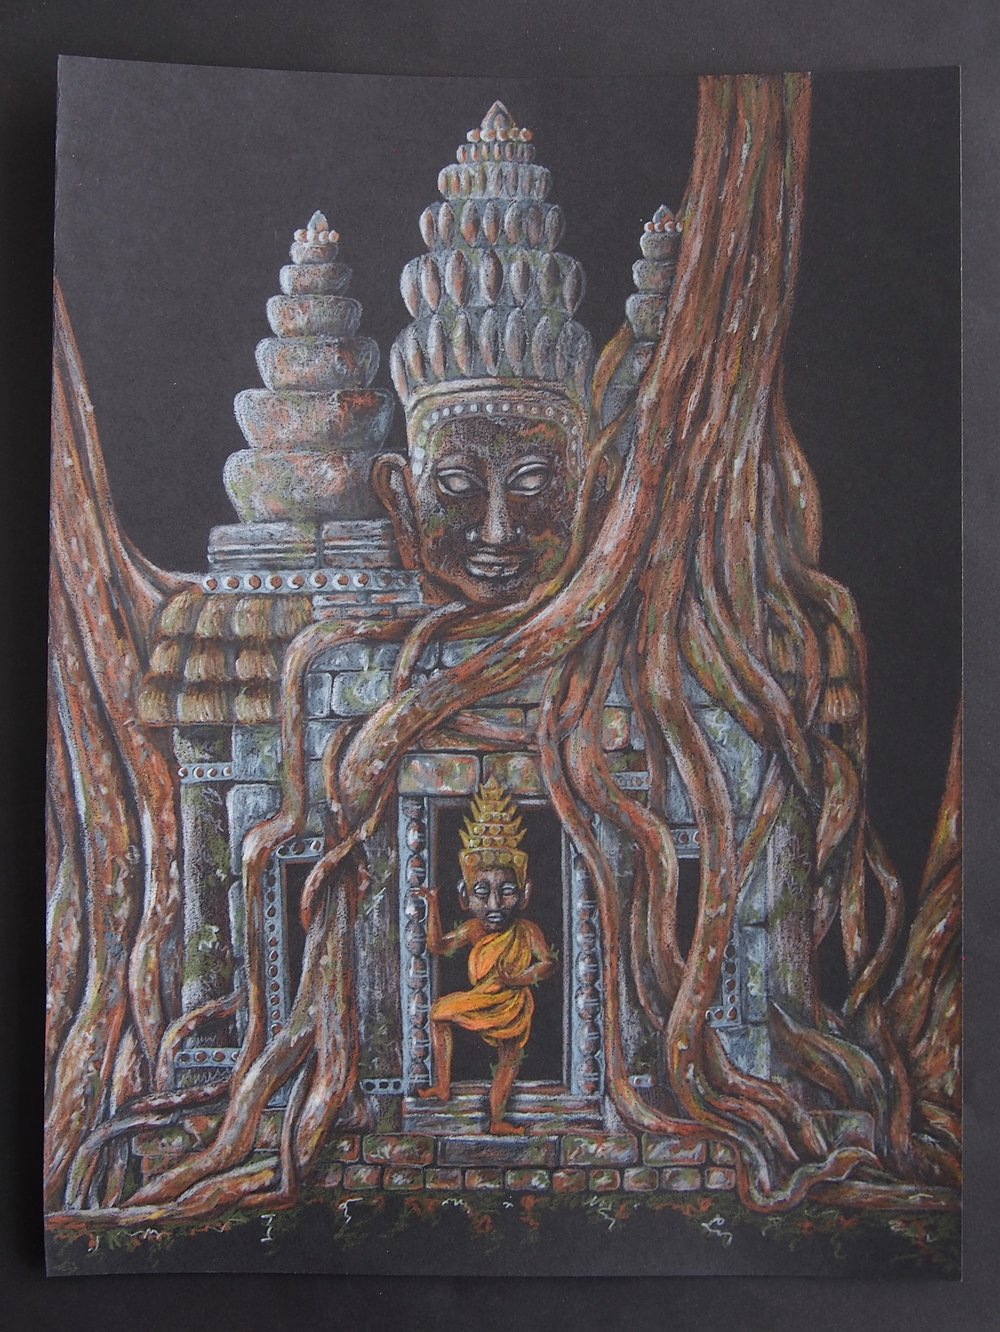 ANGKOR WAT, Colored pencil, 2017